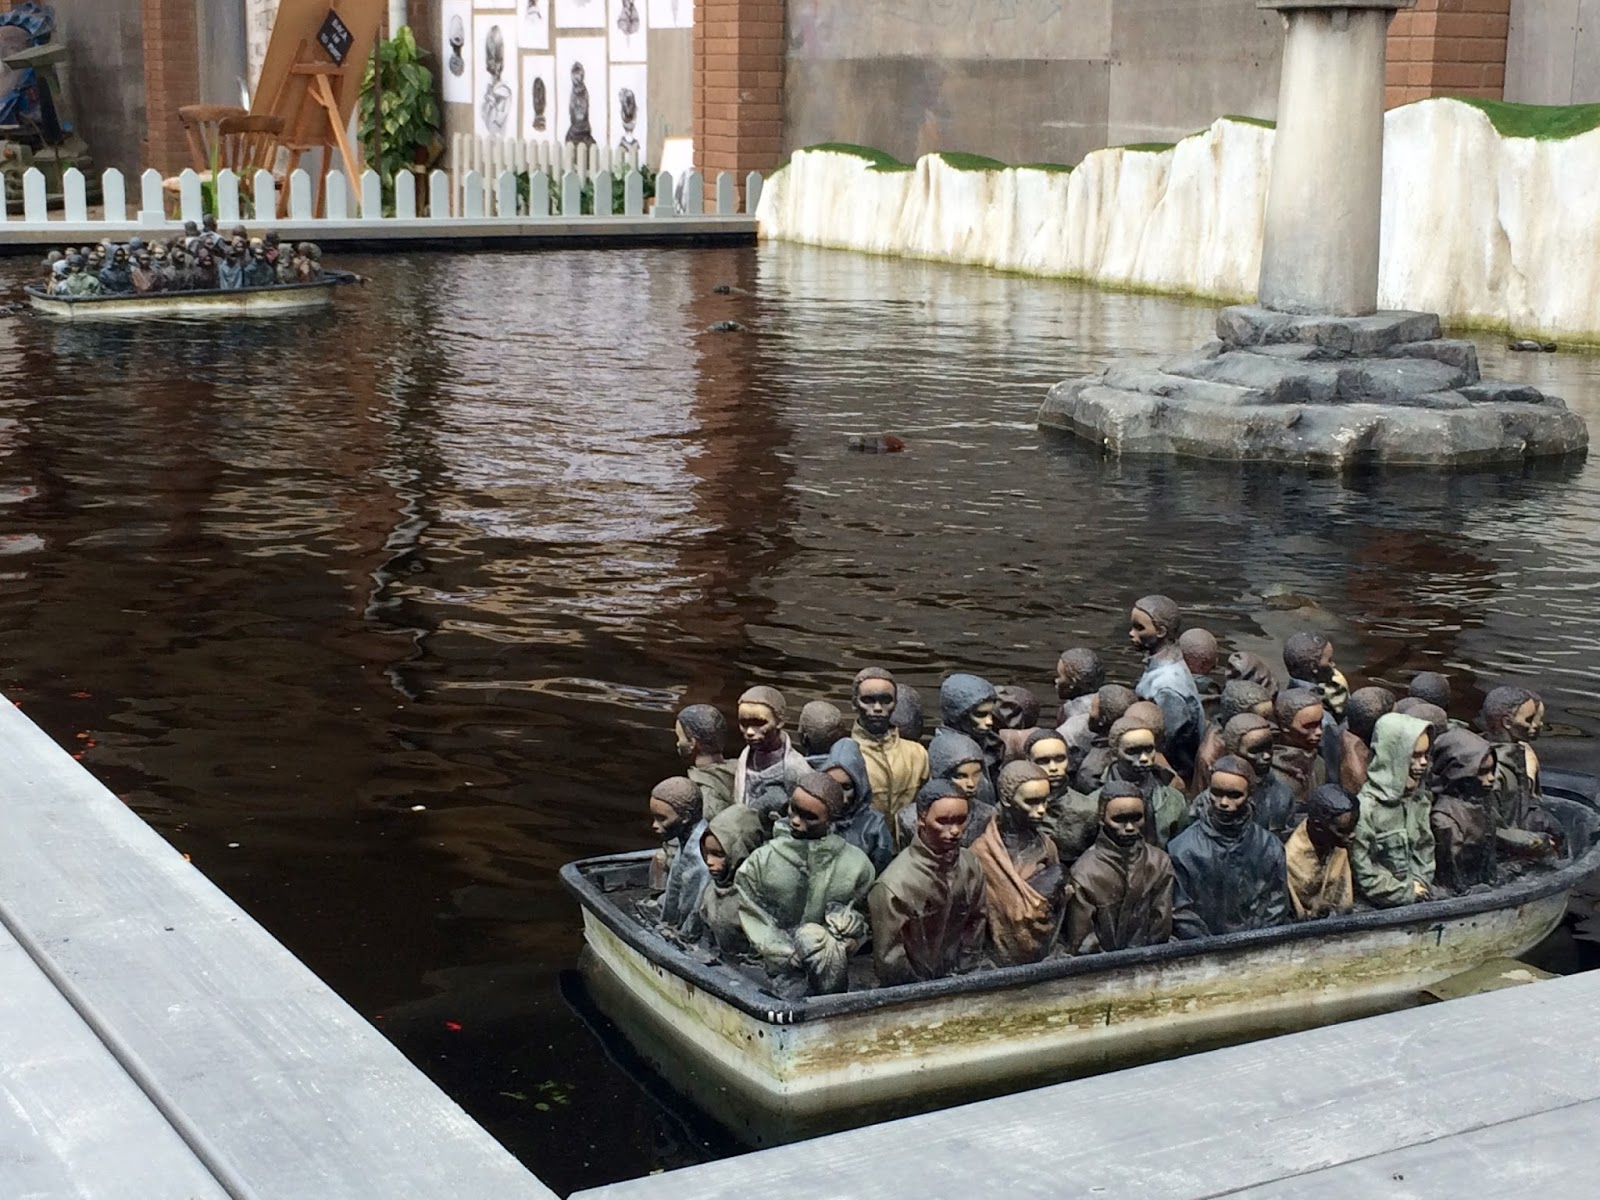 Banksy Boat Installation at Dismaland with Migrants